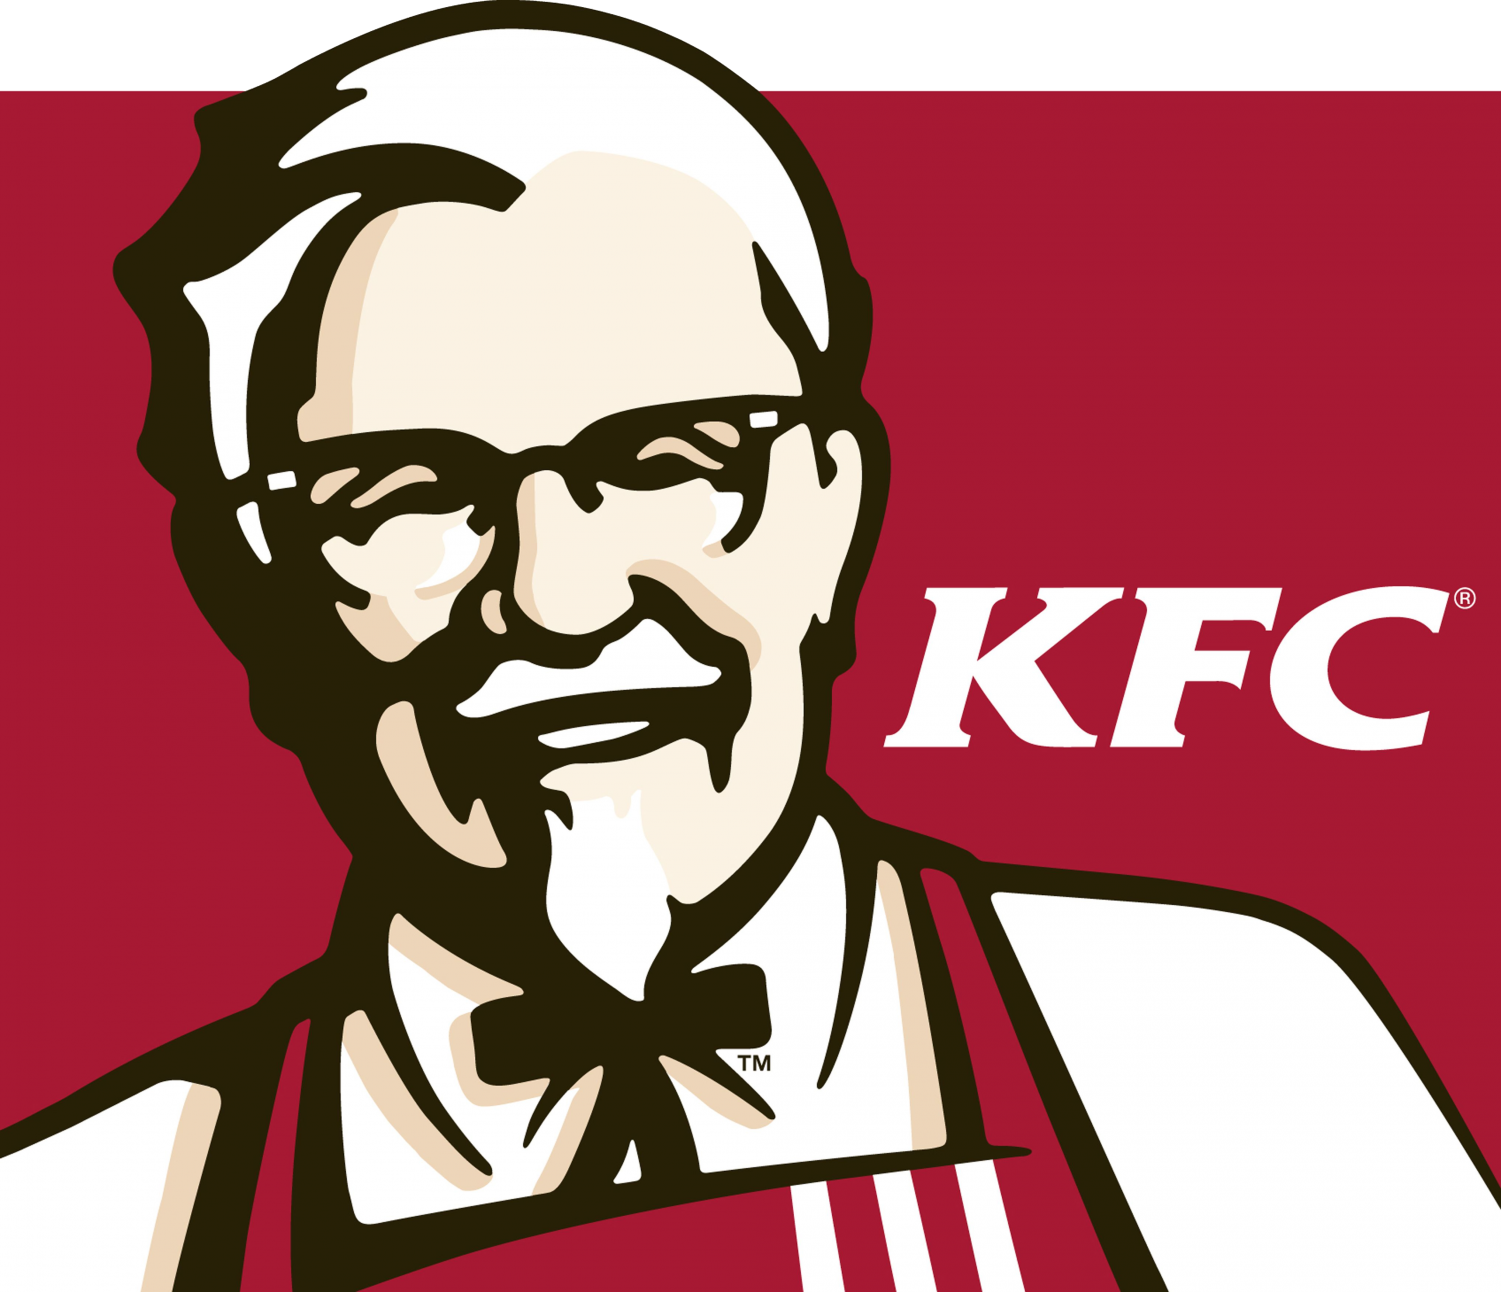 Advertising for KFC has been successful at boosting its business lately. Due to the new video game and sandwich, Colonel Sanders remains the focal point for the company still.